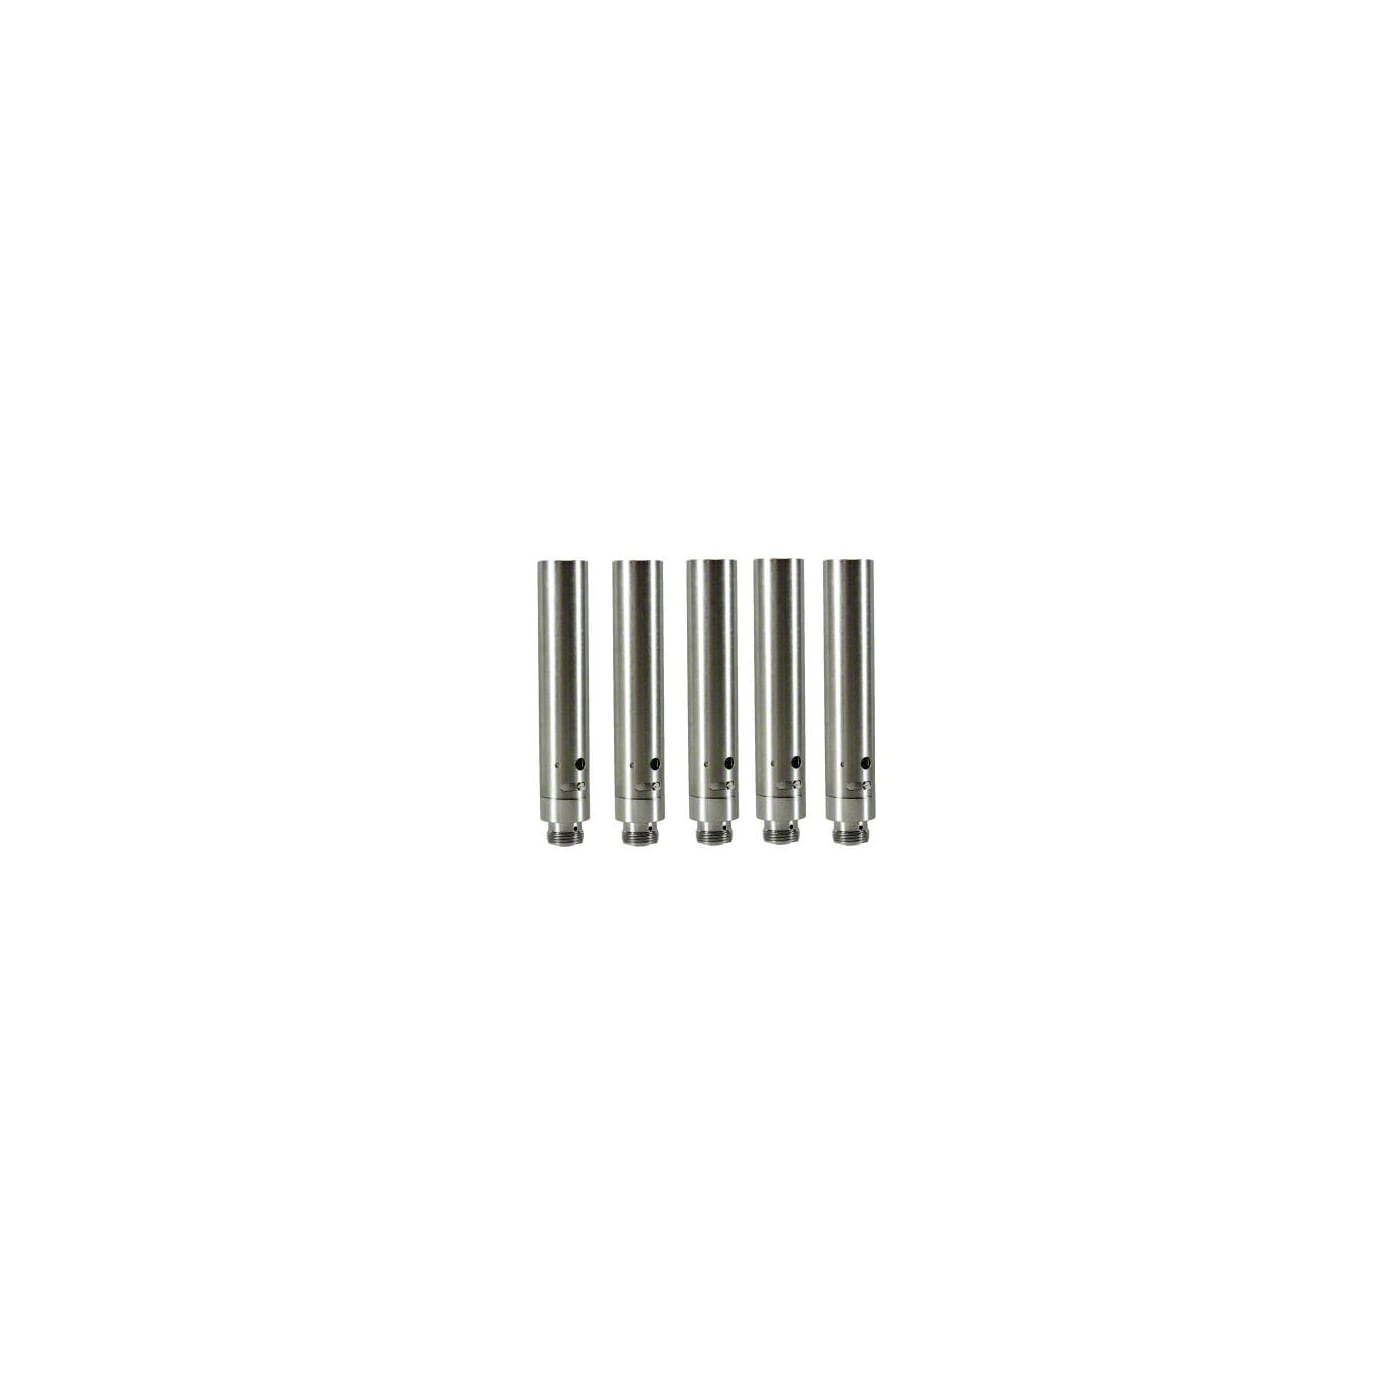 Boge 510 Twist Cartomizer 5 Pack - 1.8 ohm